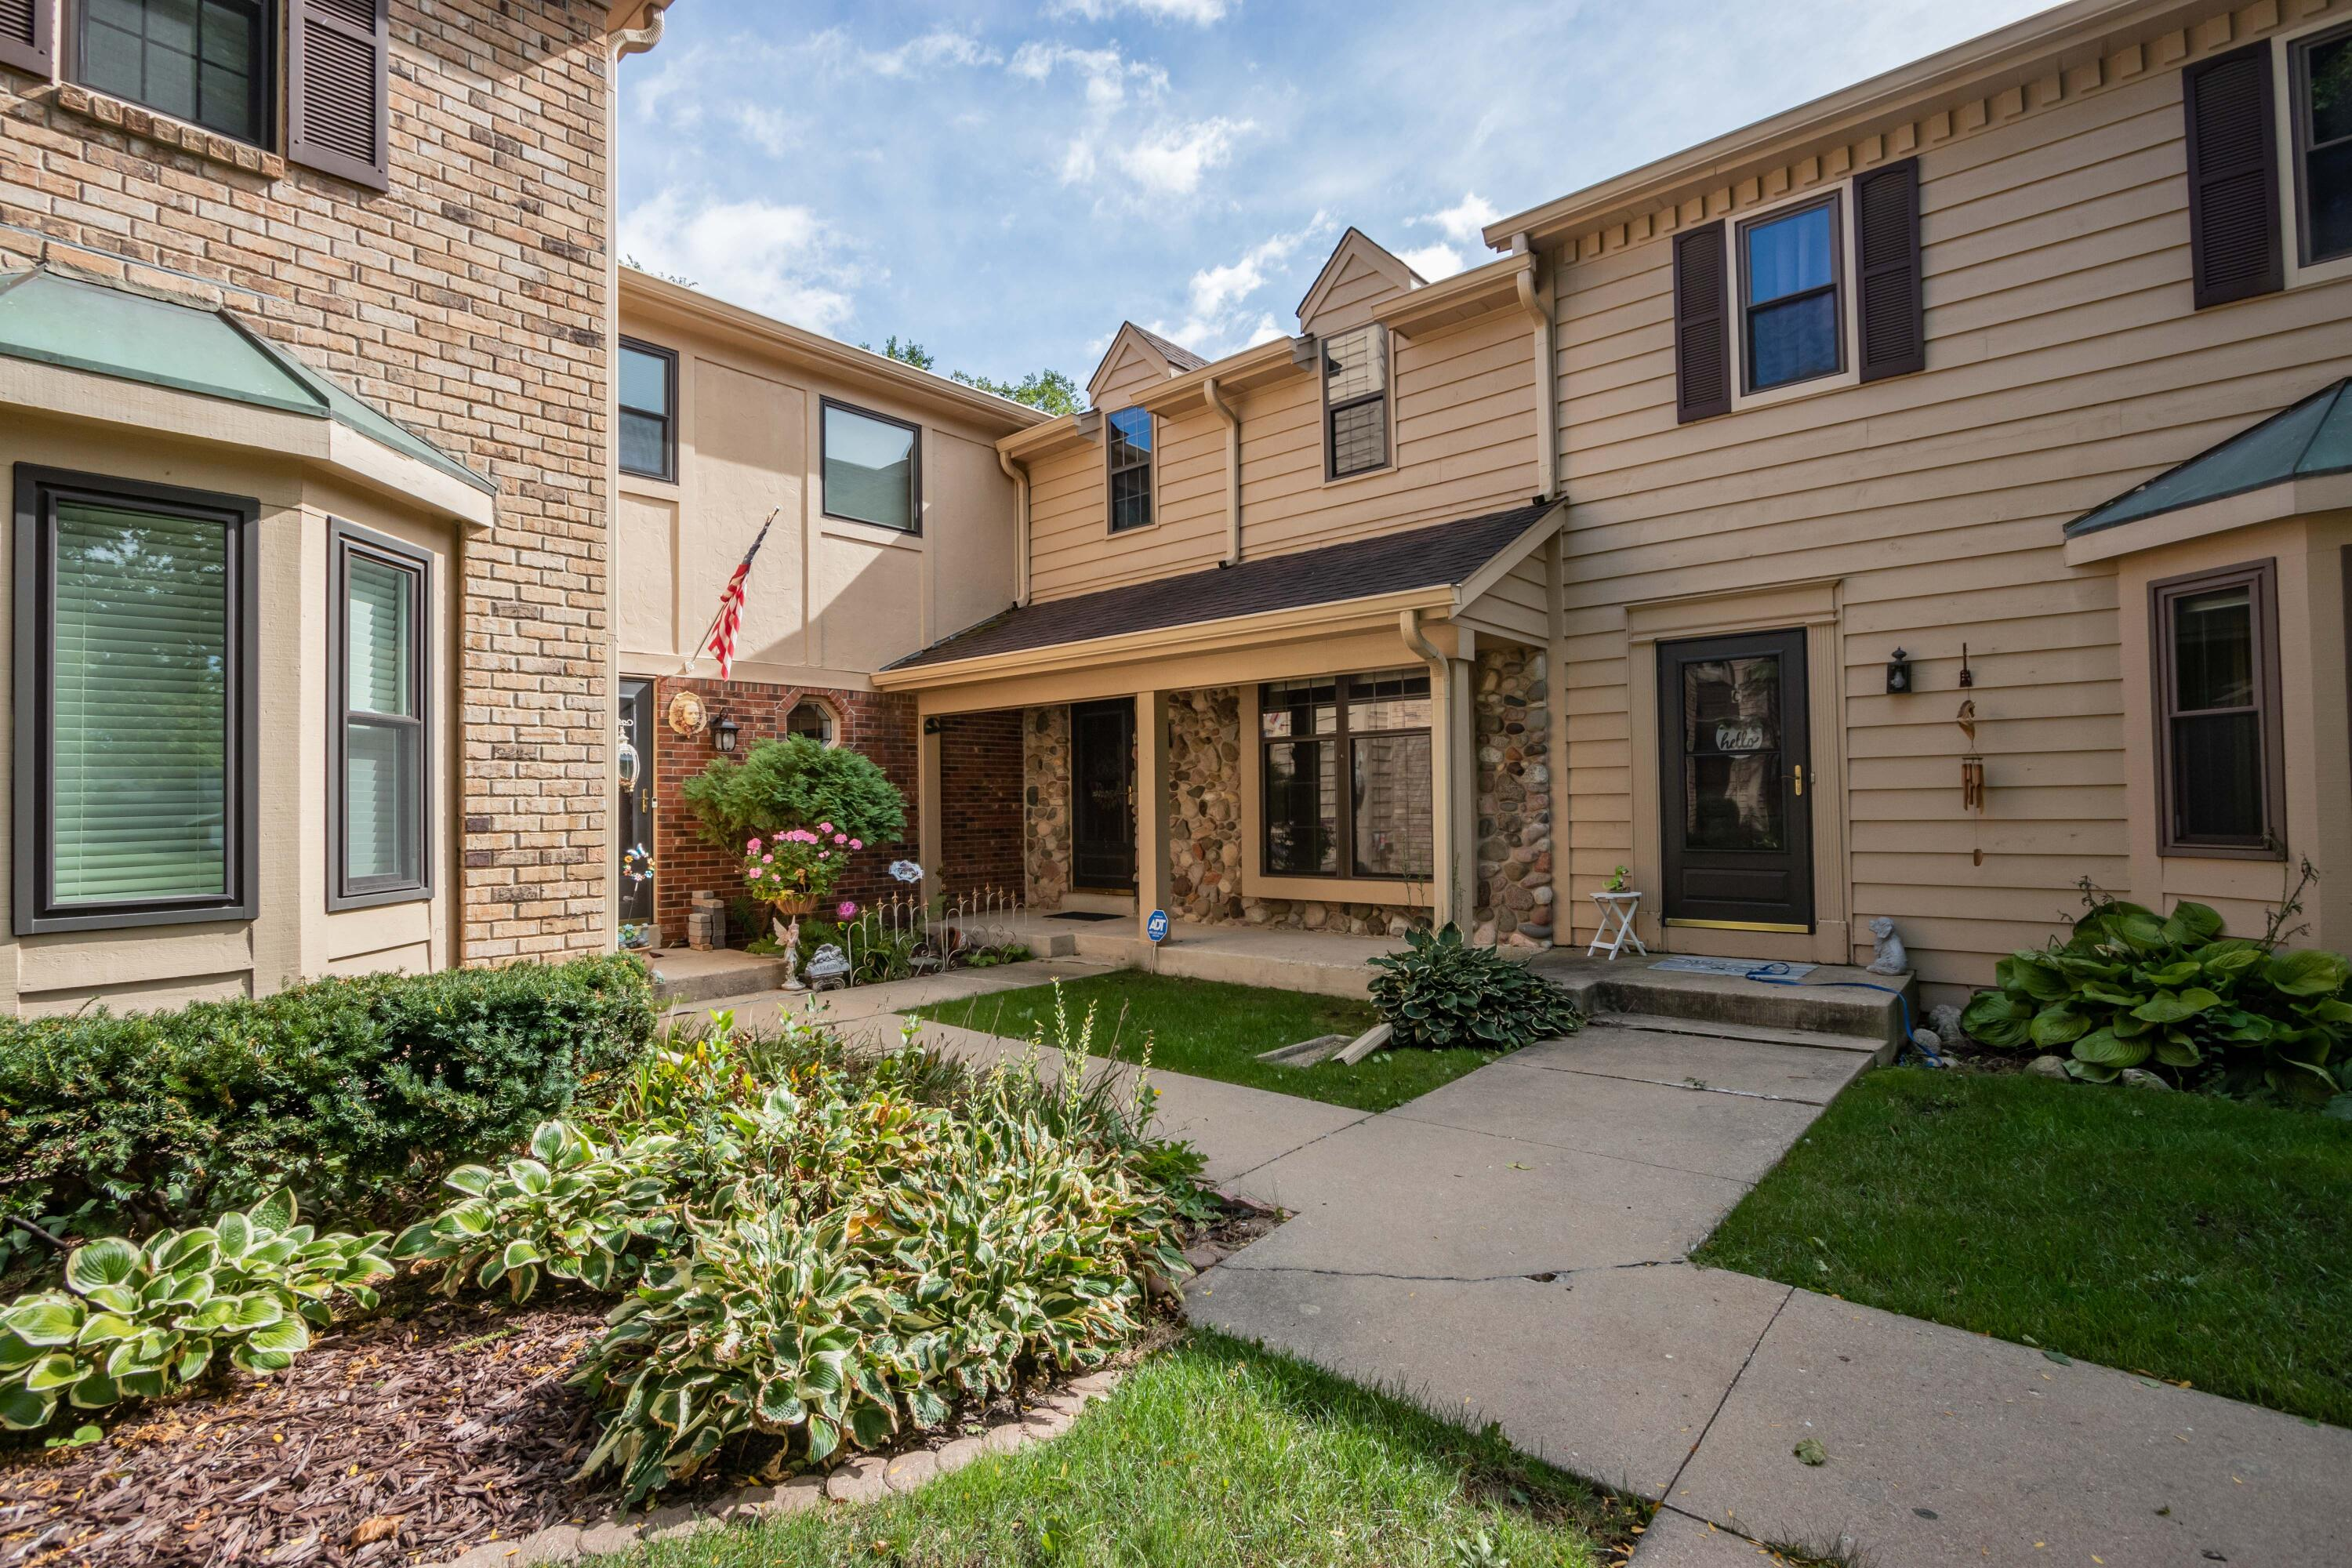 384 Willow Grove Dr, Pewaukee, Wisconsin 53072, 2 Bedrooms Bedrooms, 6 Rooms Rooms,1 BathroomBathrooms,Condominiums,For Sale,Willow Grove Dr,1,1764837